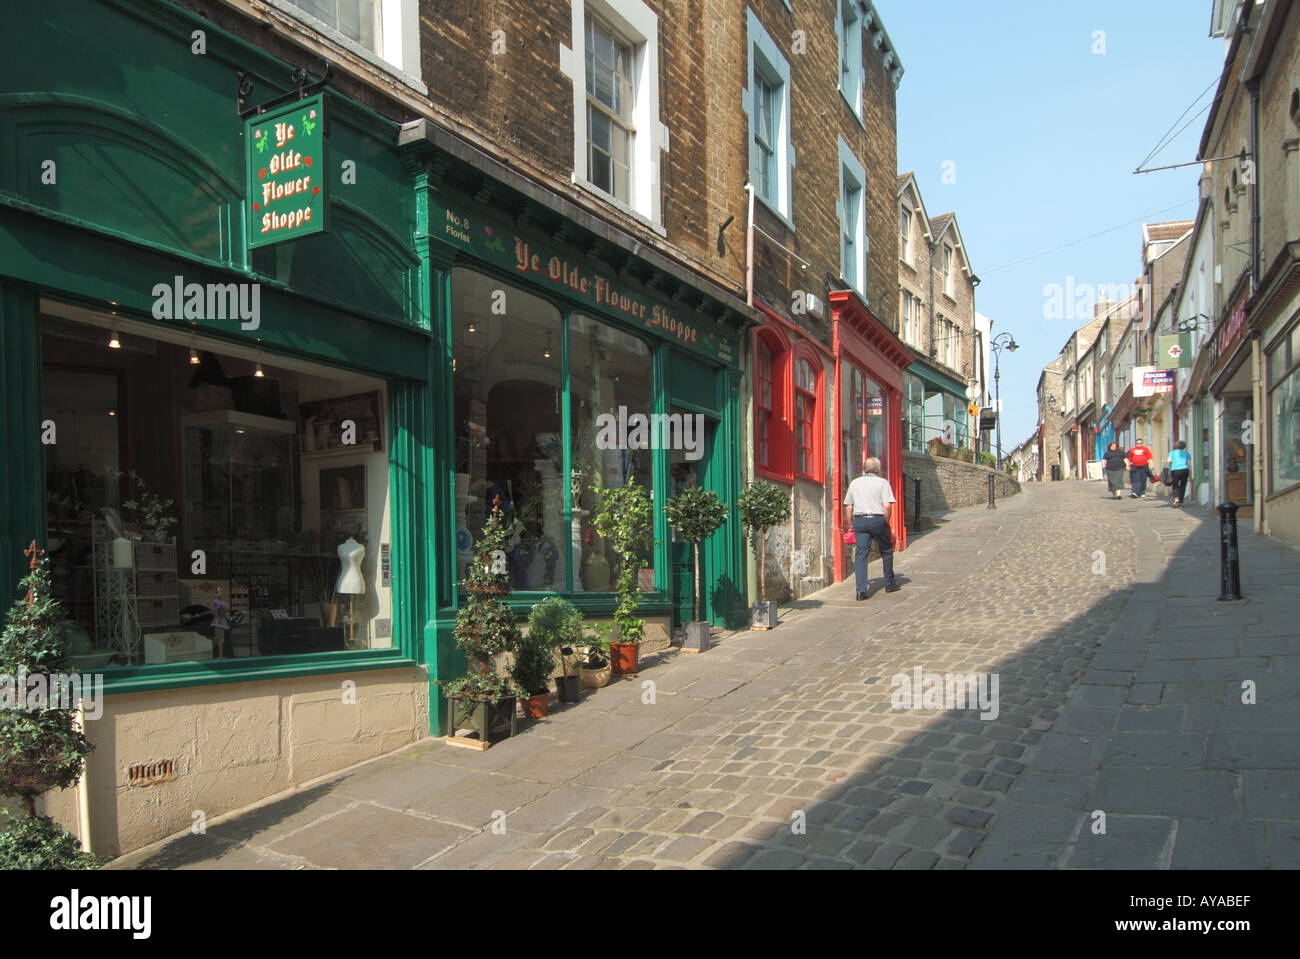 Frome a quaint narrow hilly side street housing a selection of small shops and eating venues with dwellings above Stock Photo